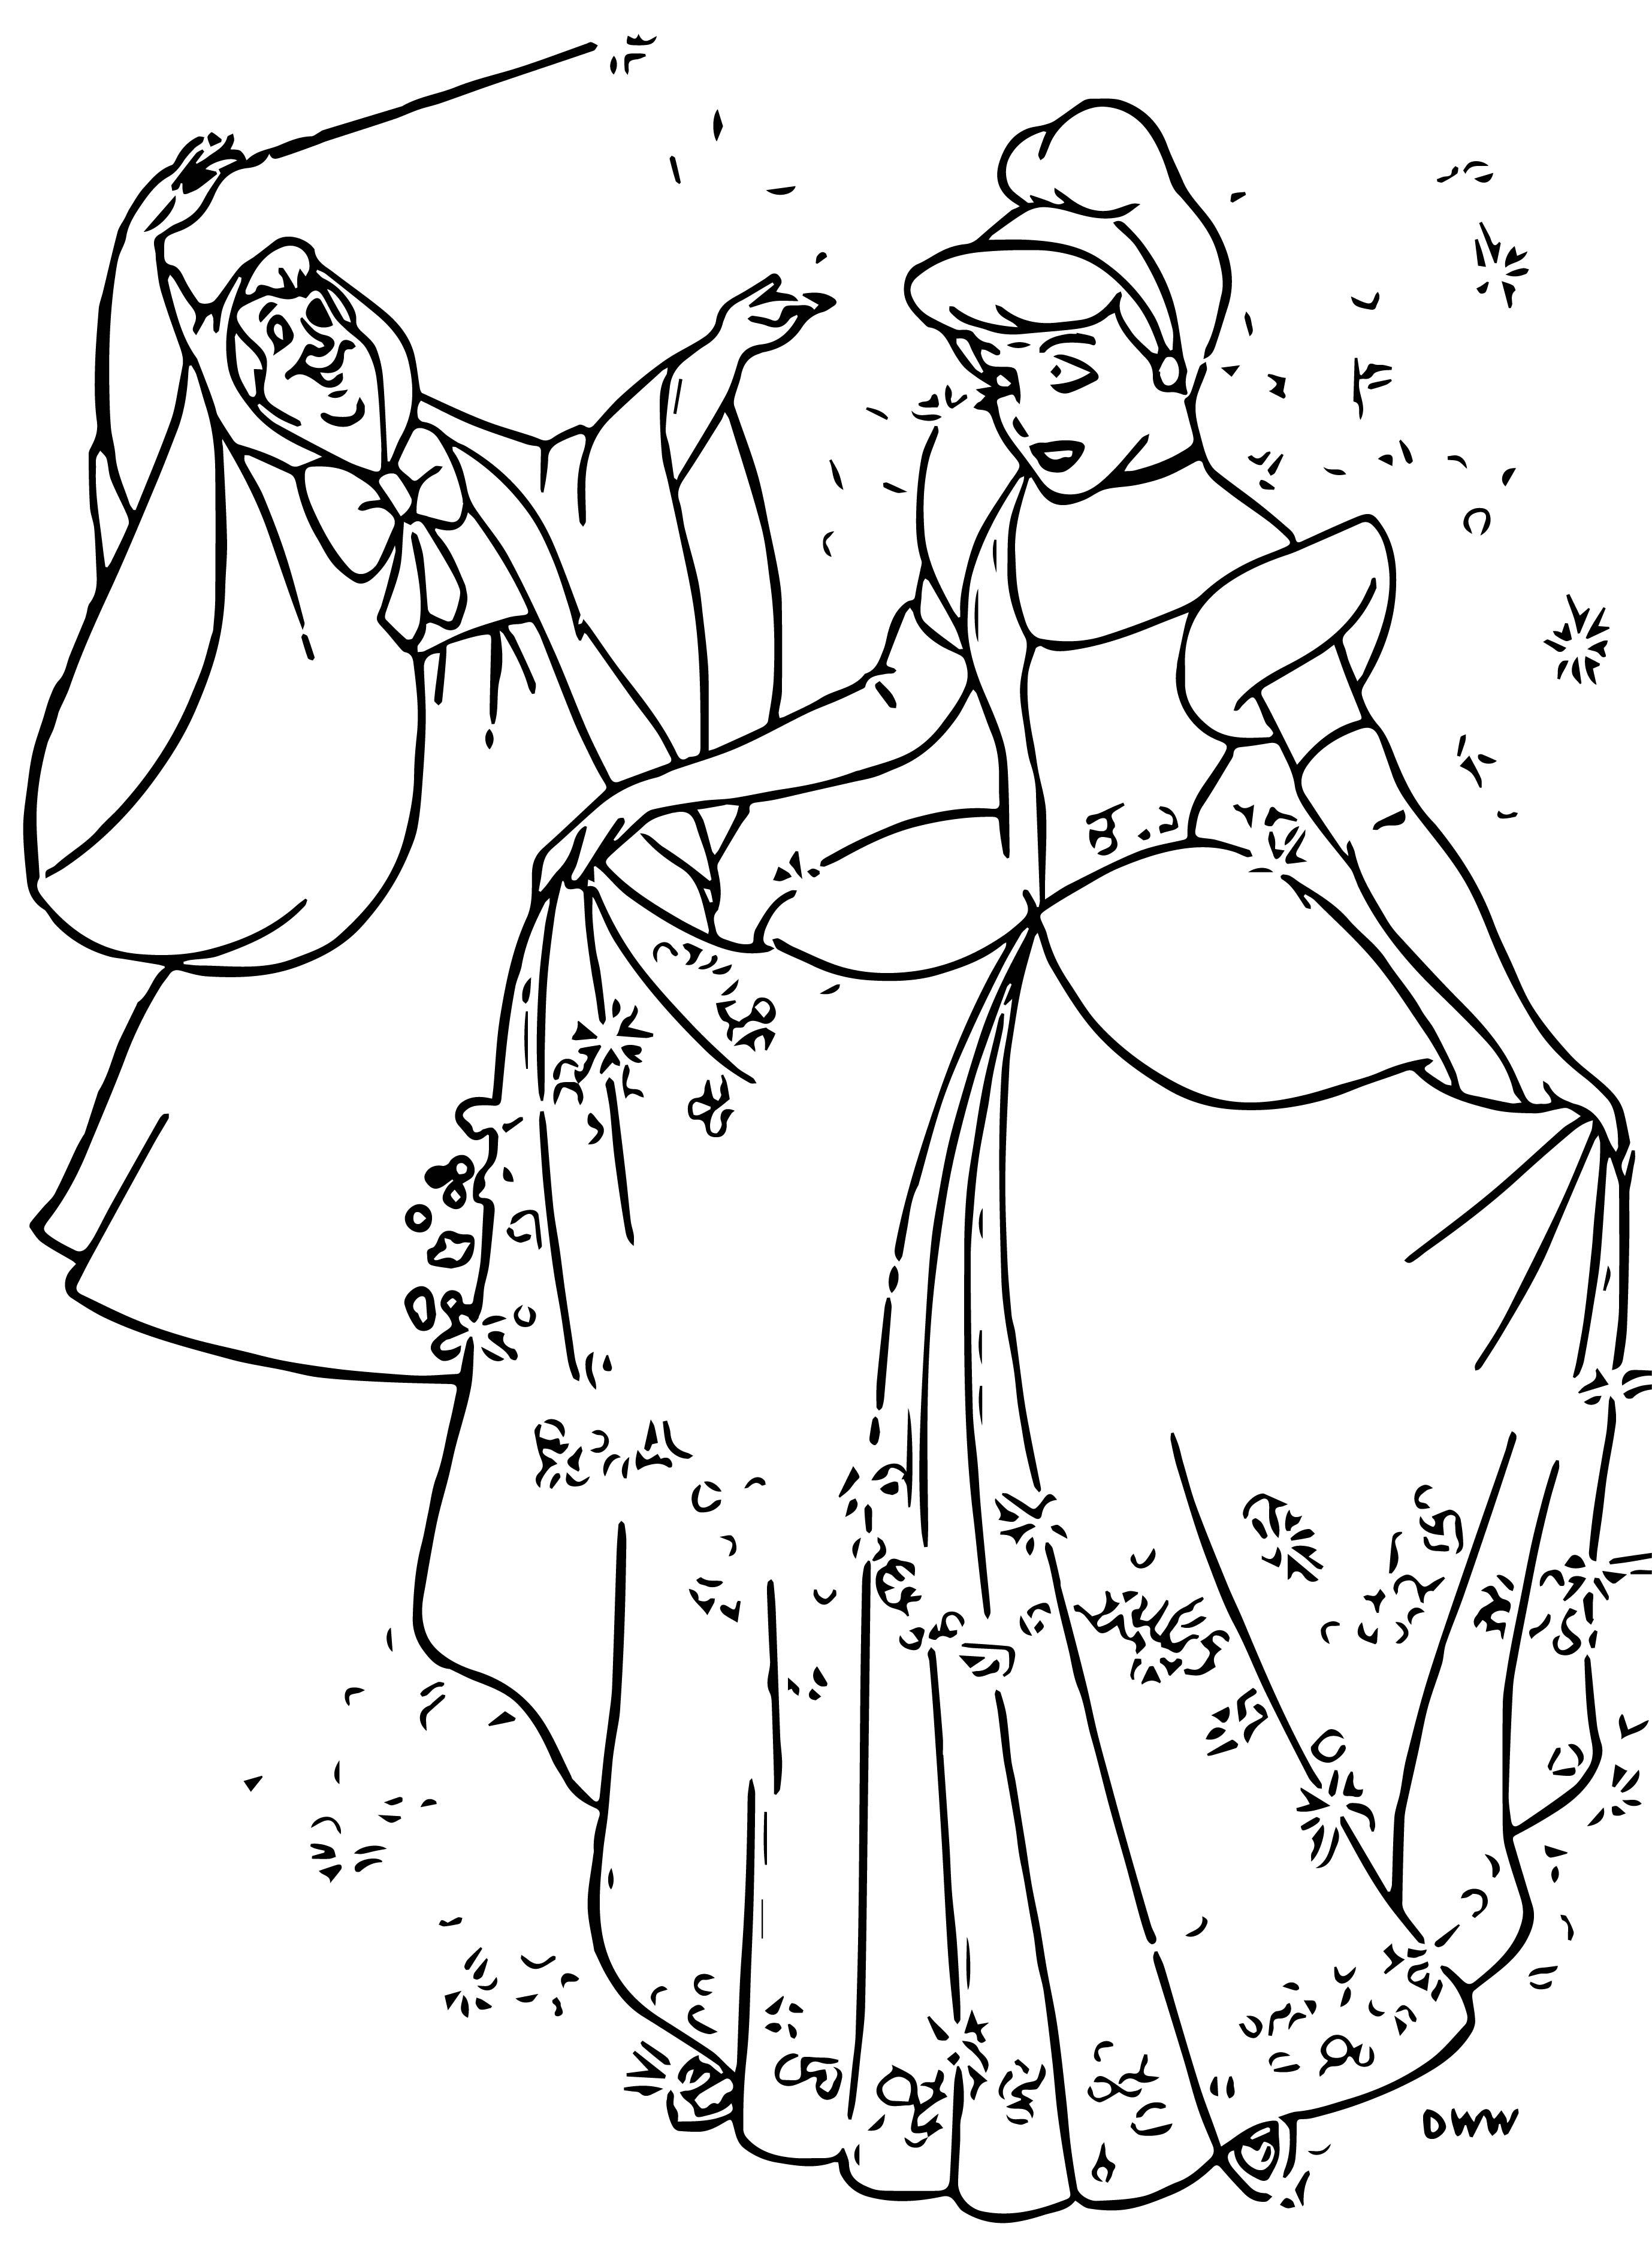 Cinderella fairy godmother coloring pages 18 for Cinderella fairy godmother coloring pages